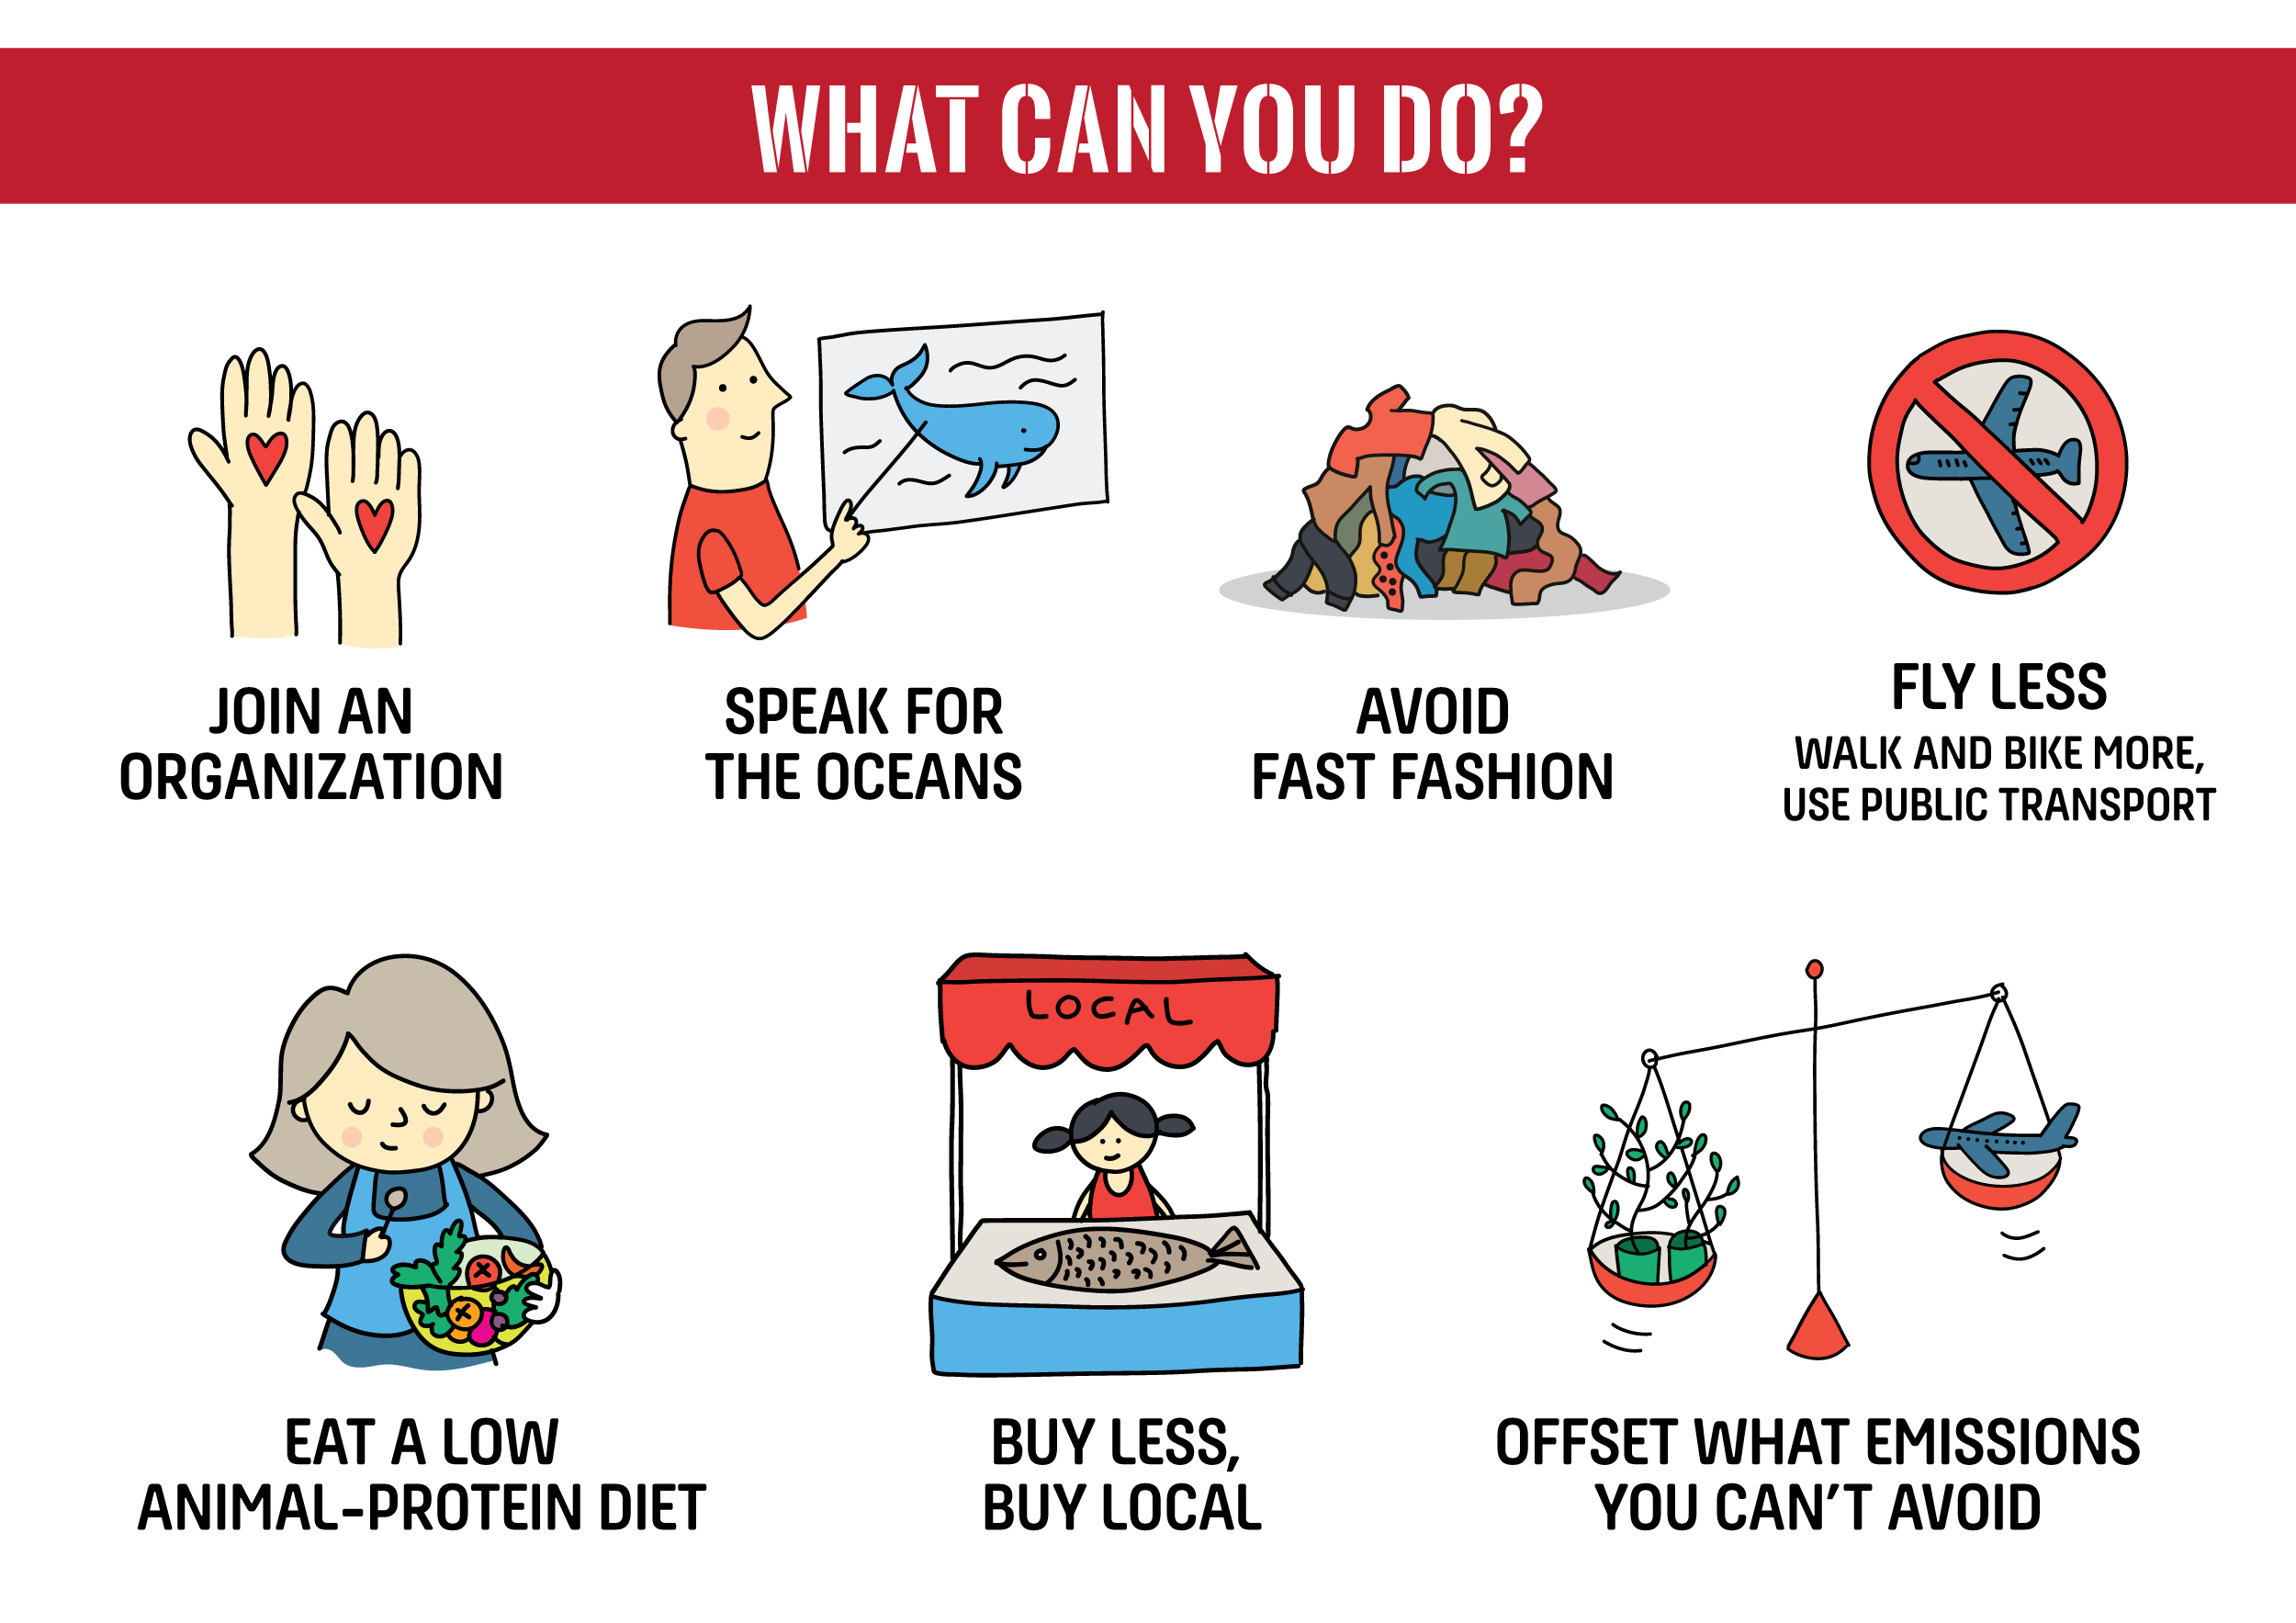 Combat Climate Change - Reduce your carbon footprint: Drive less, fly less; walk and bike more, use public transport and bike more. Source your electricity from renewables.*Offset the carbon emissions you are still responsible for. with reputable companies .**Buy less: Say no to fast fashion; buy clothes that last, wear and repair them, or buy second hand.